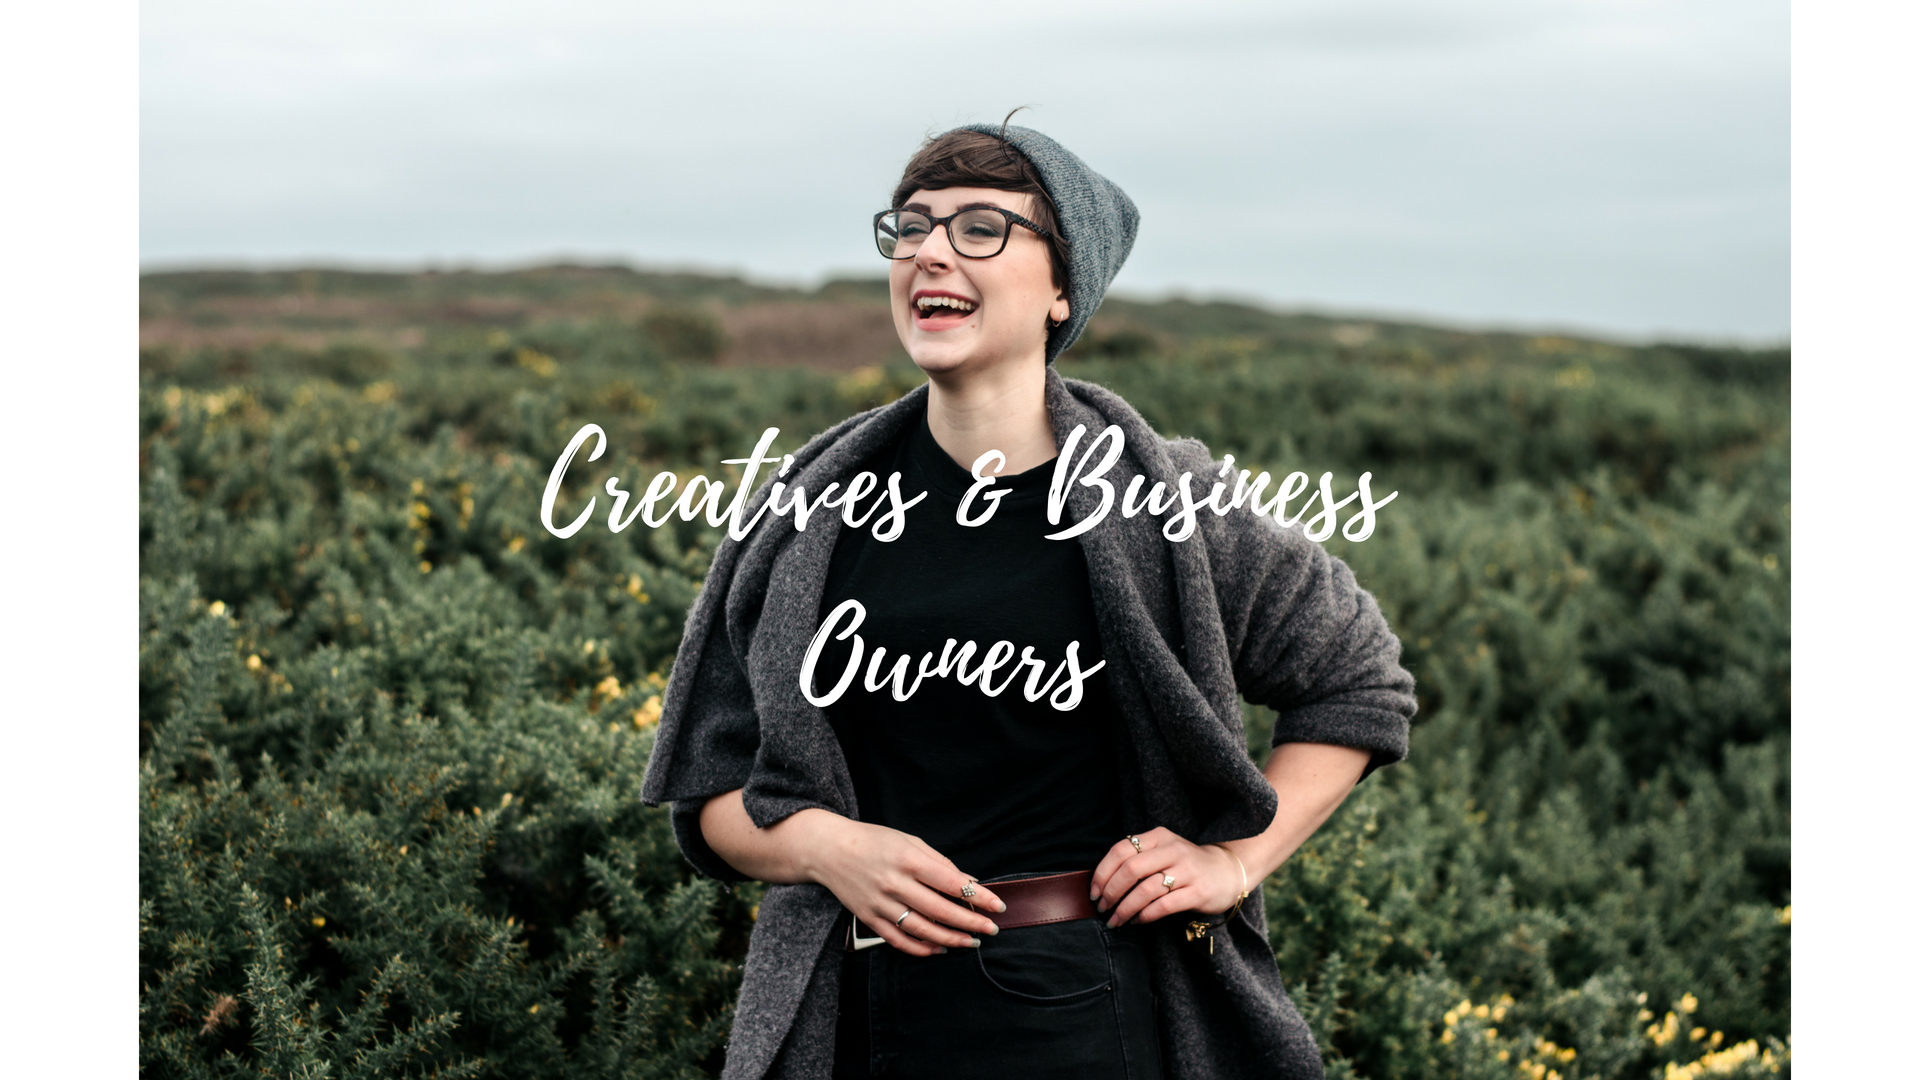 portrait photography portfolio for small business owners and creatives.png